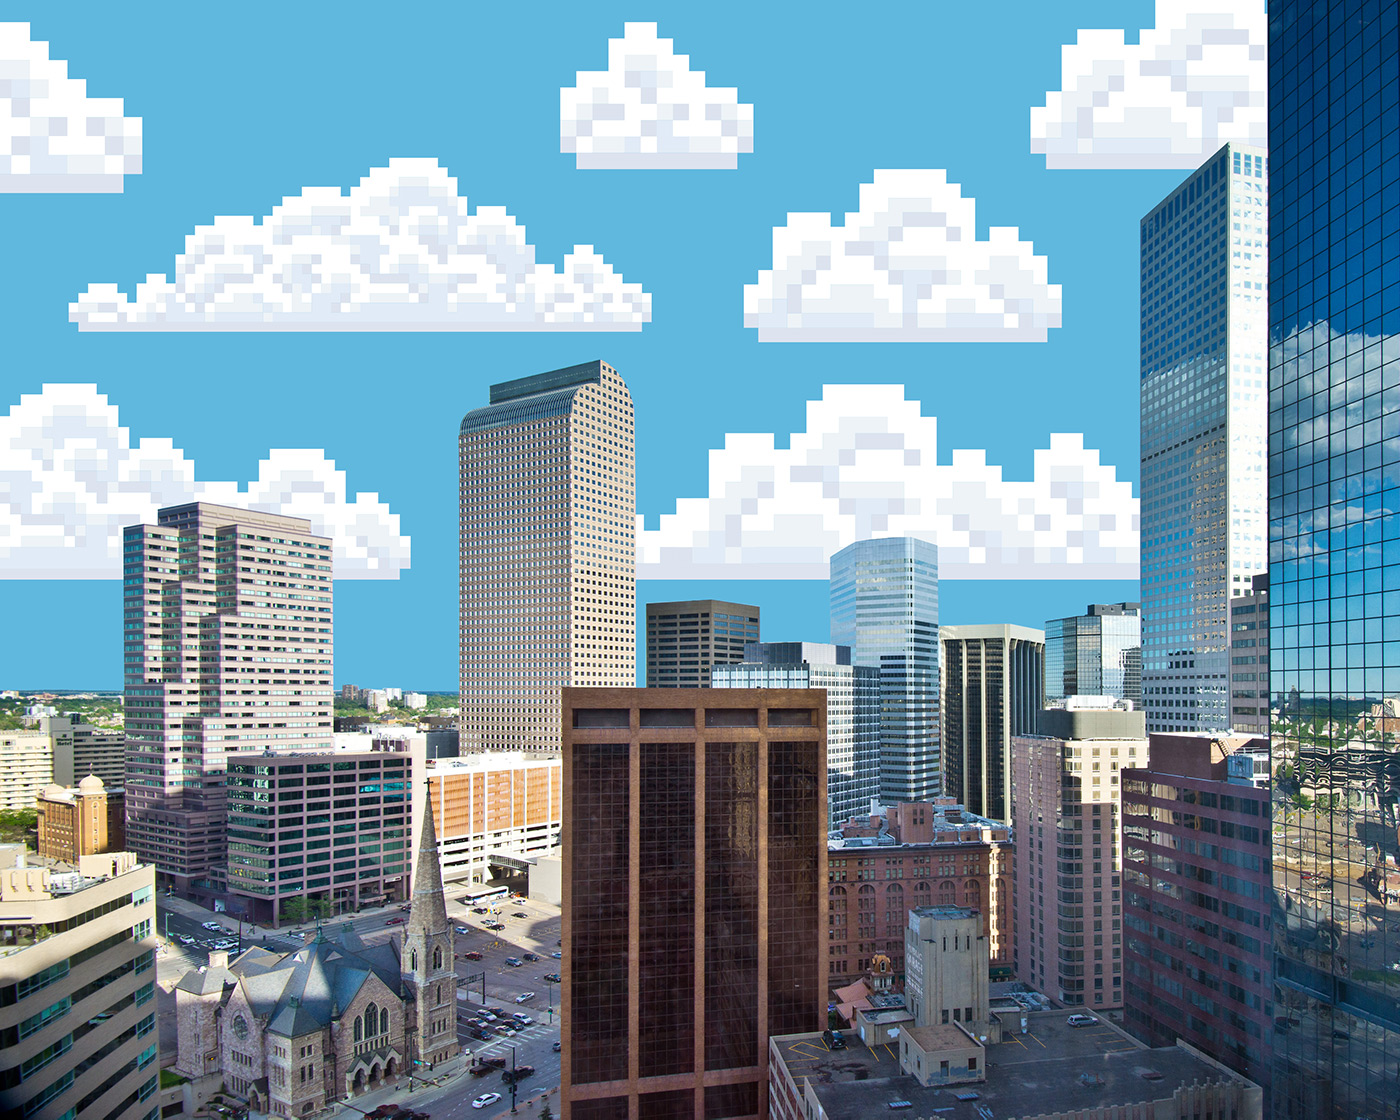 denver_pixel_cloud.jpg